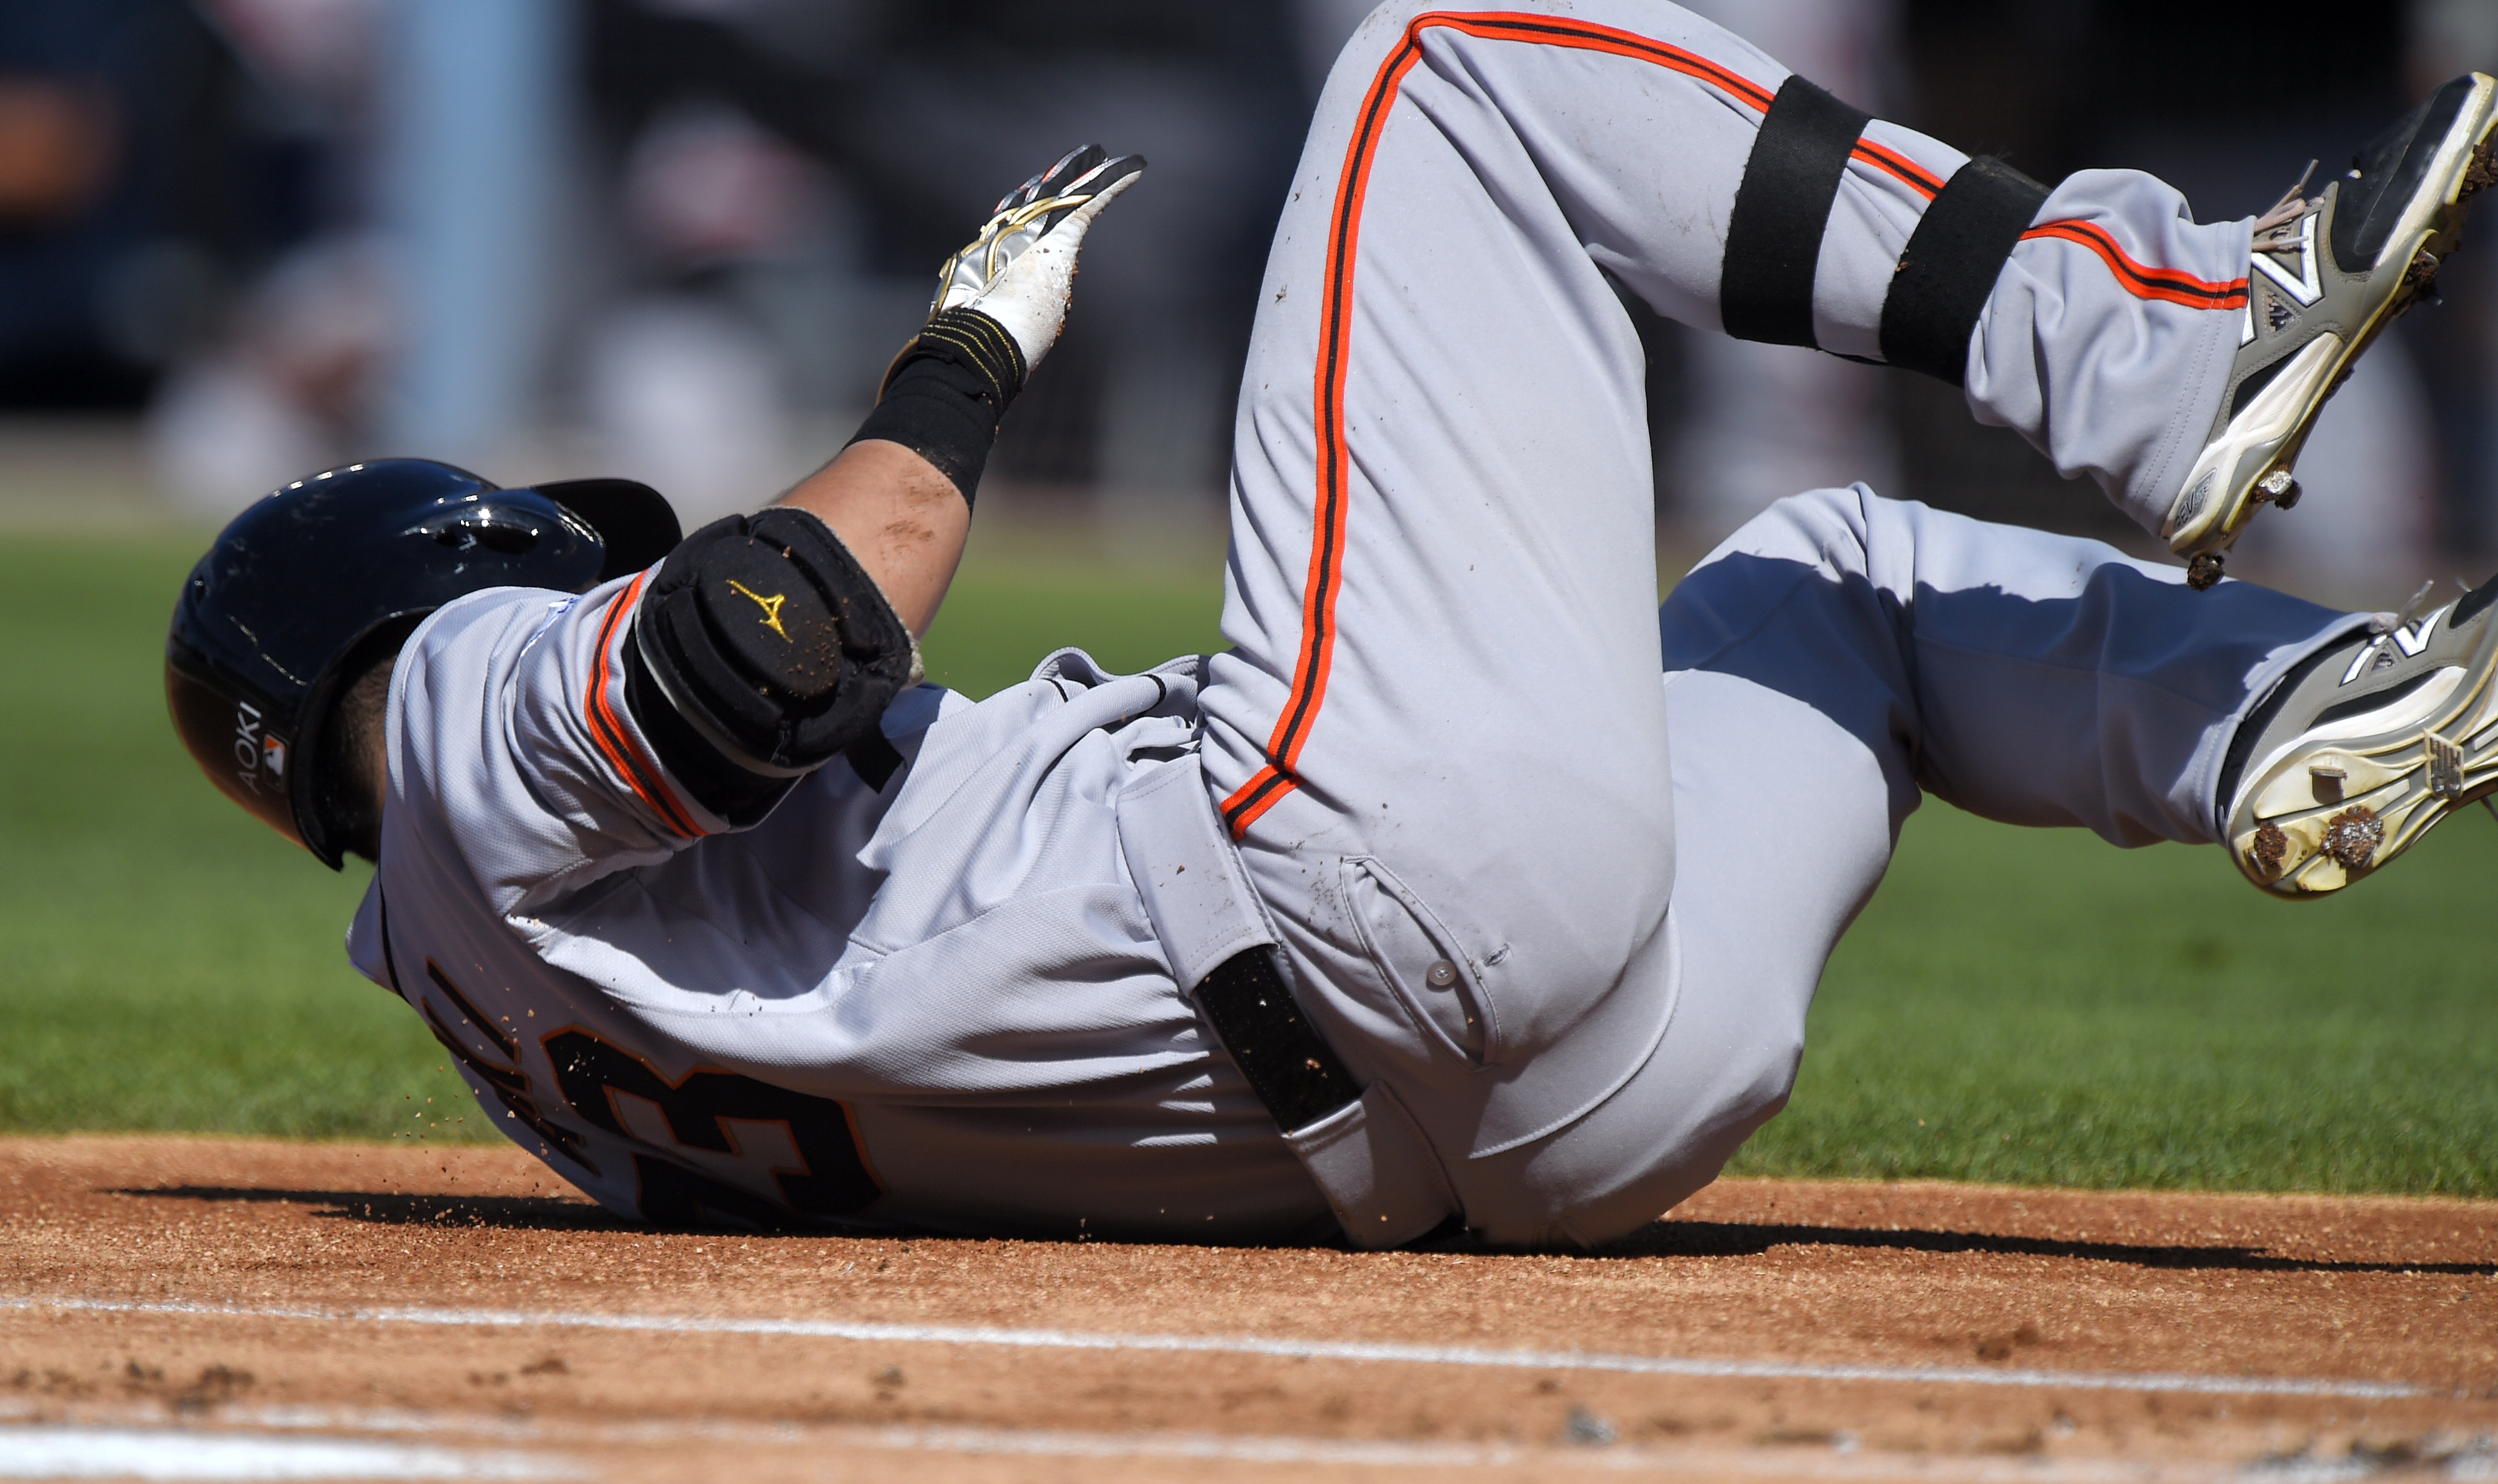 San Francisco Giants' Nori Aoki, of Japan, rolls on the ground after he was hit by a pitch during the first inning of a baseball game against the Los Angeles Dodgers, Saturday, June 20, 2015, in Los Angeles. (AP Photo/Mark J. Terrill)